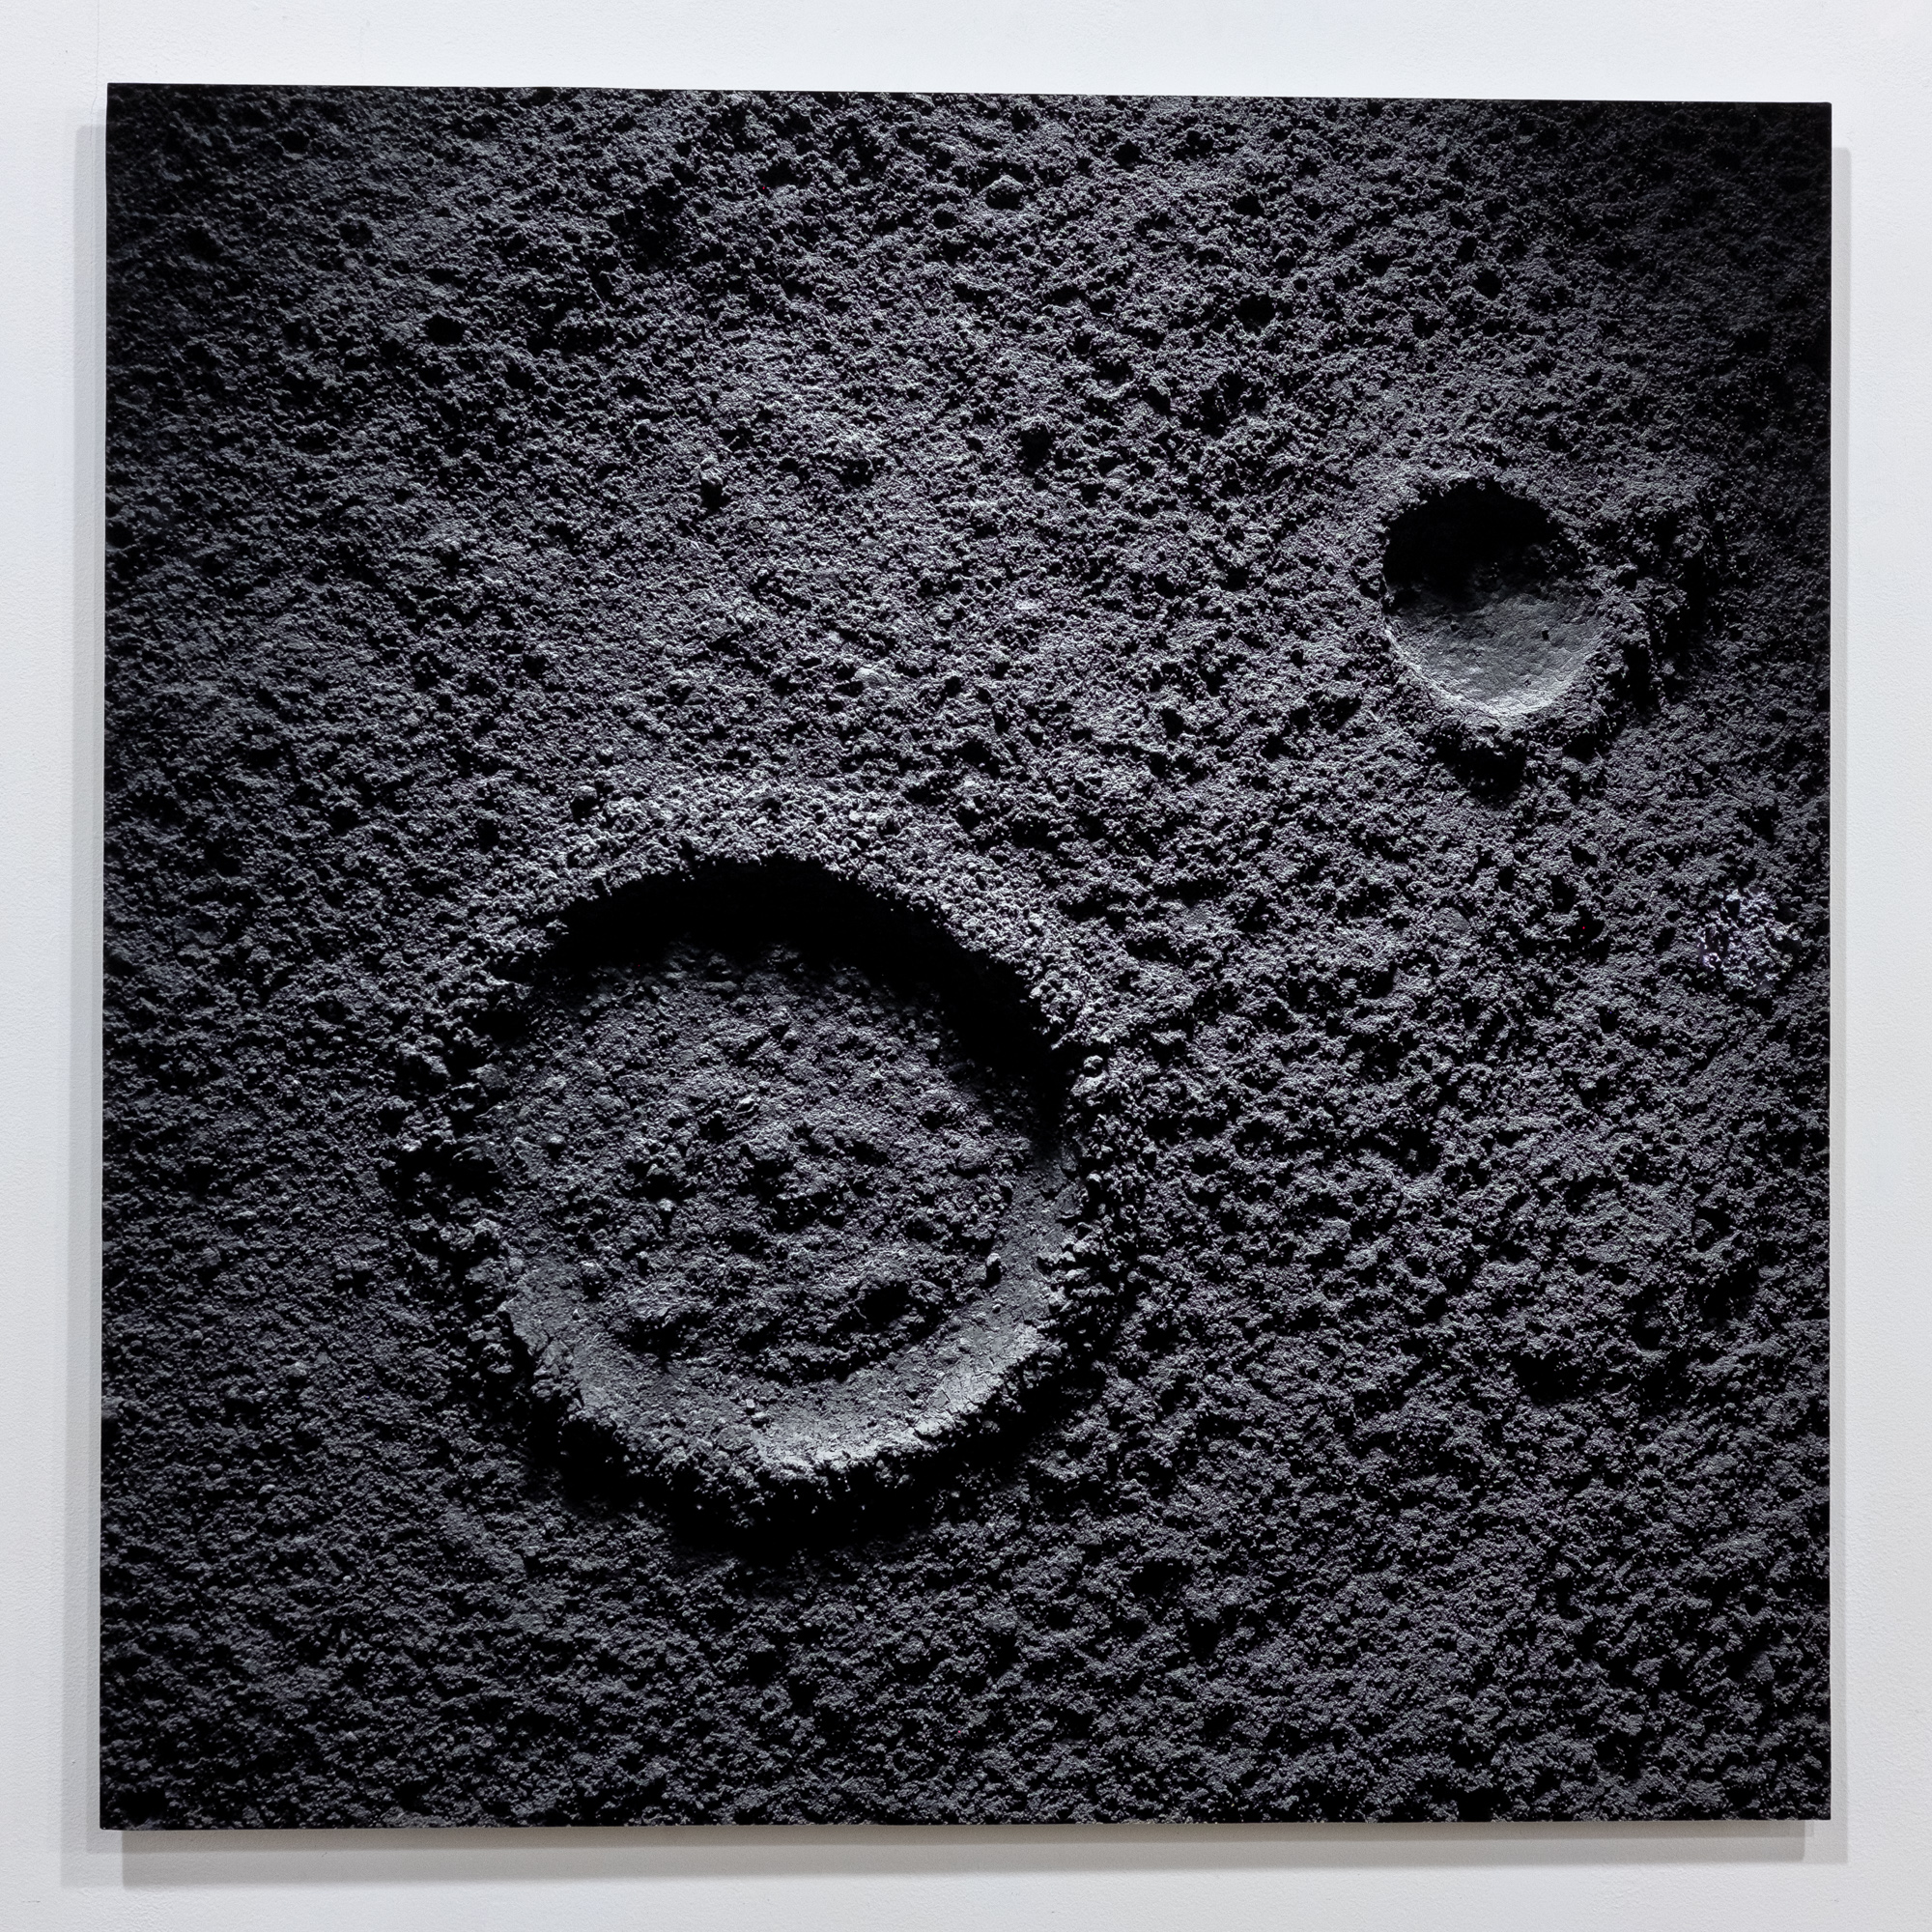 Mark Schoon & Casey McGuire   Craters IV  Archival pigment print 40 x 40 inches TNS4 037G